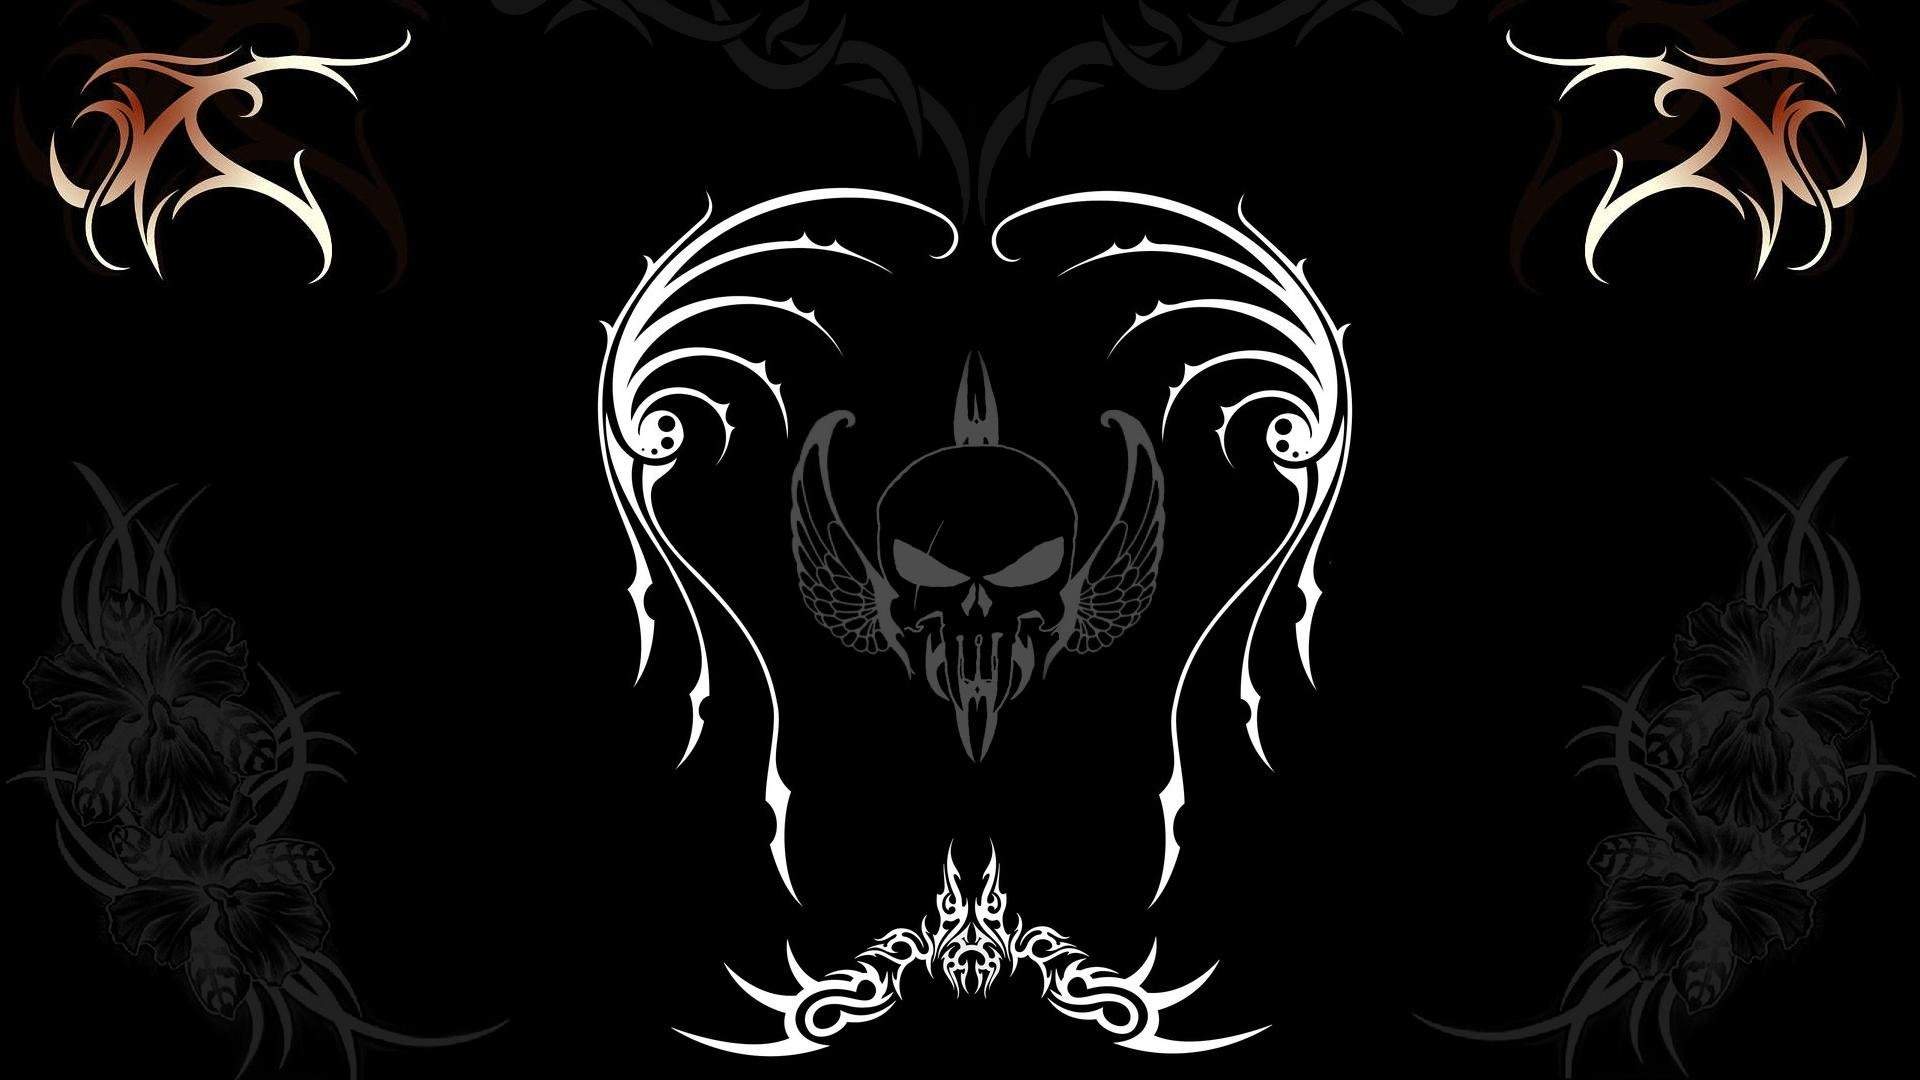 … free skull wallpapers 51 wallpapers hd wallpapers …